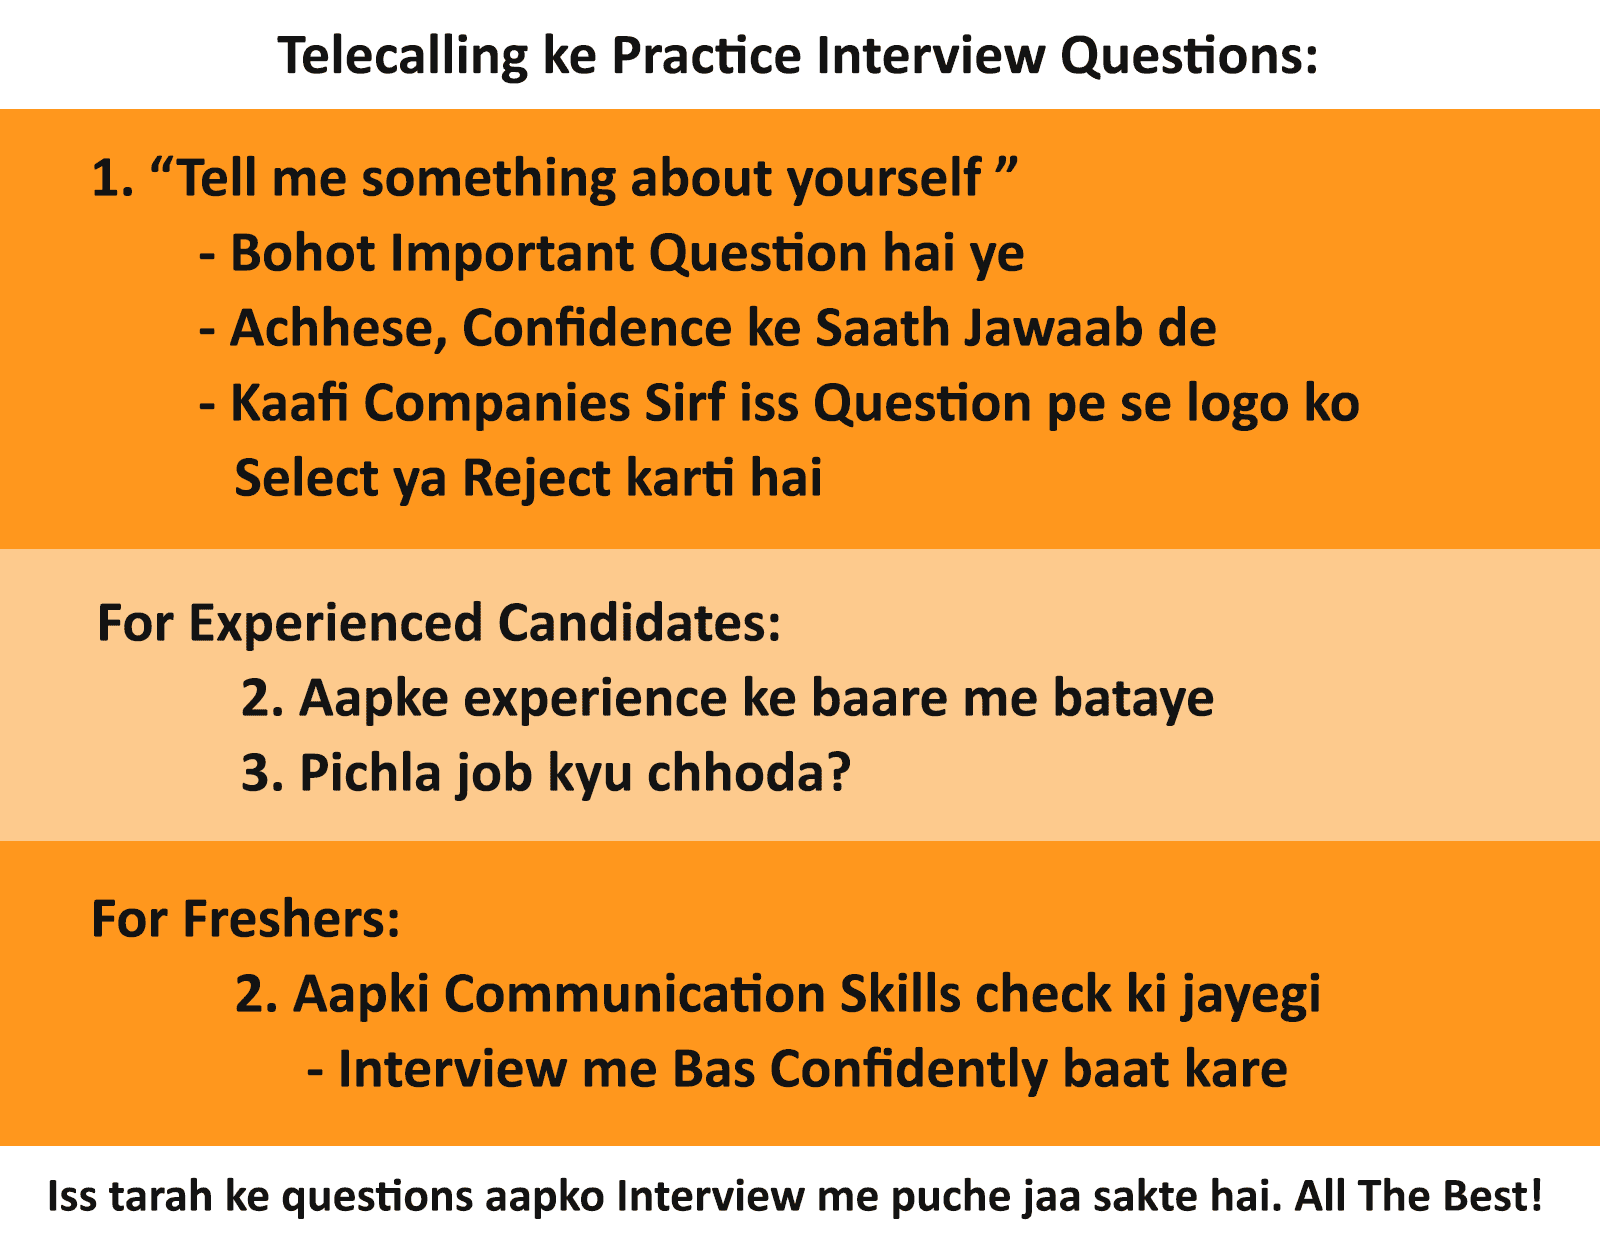 Customer Service Questions Interview Questions And Tips For Telecalling Customer Service